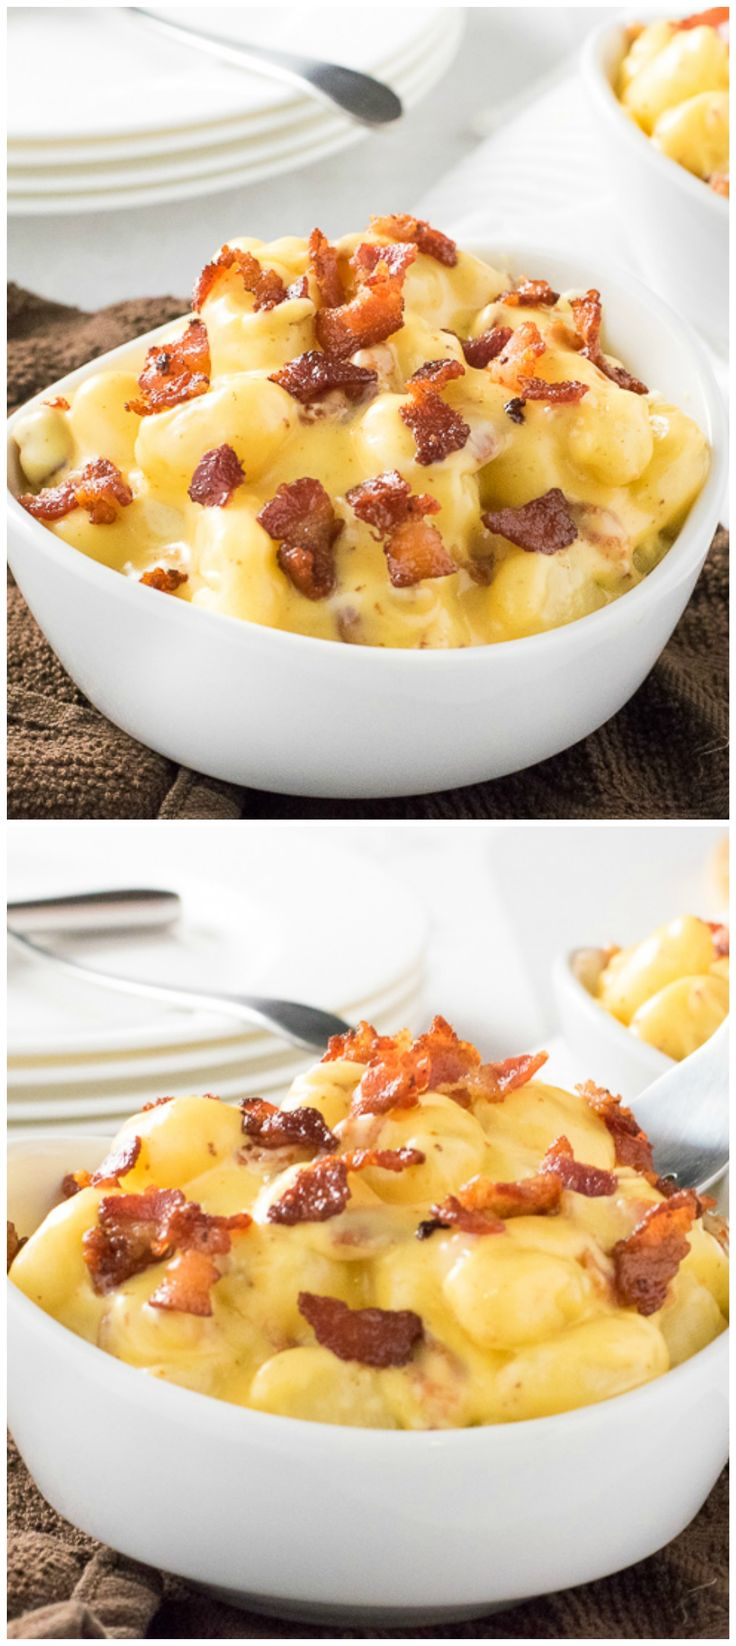 Gnocchi Mac and Cheese with Bacon - Make this for dinner and your family will go nuts!!